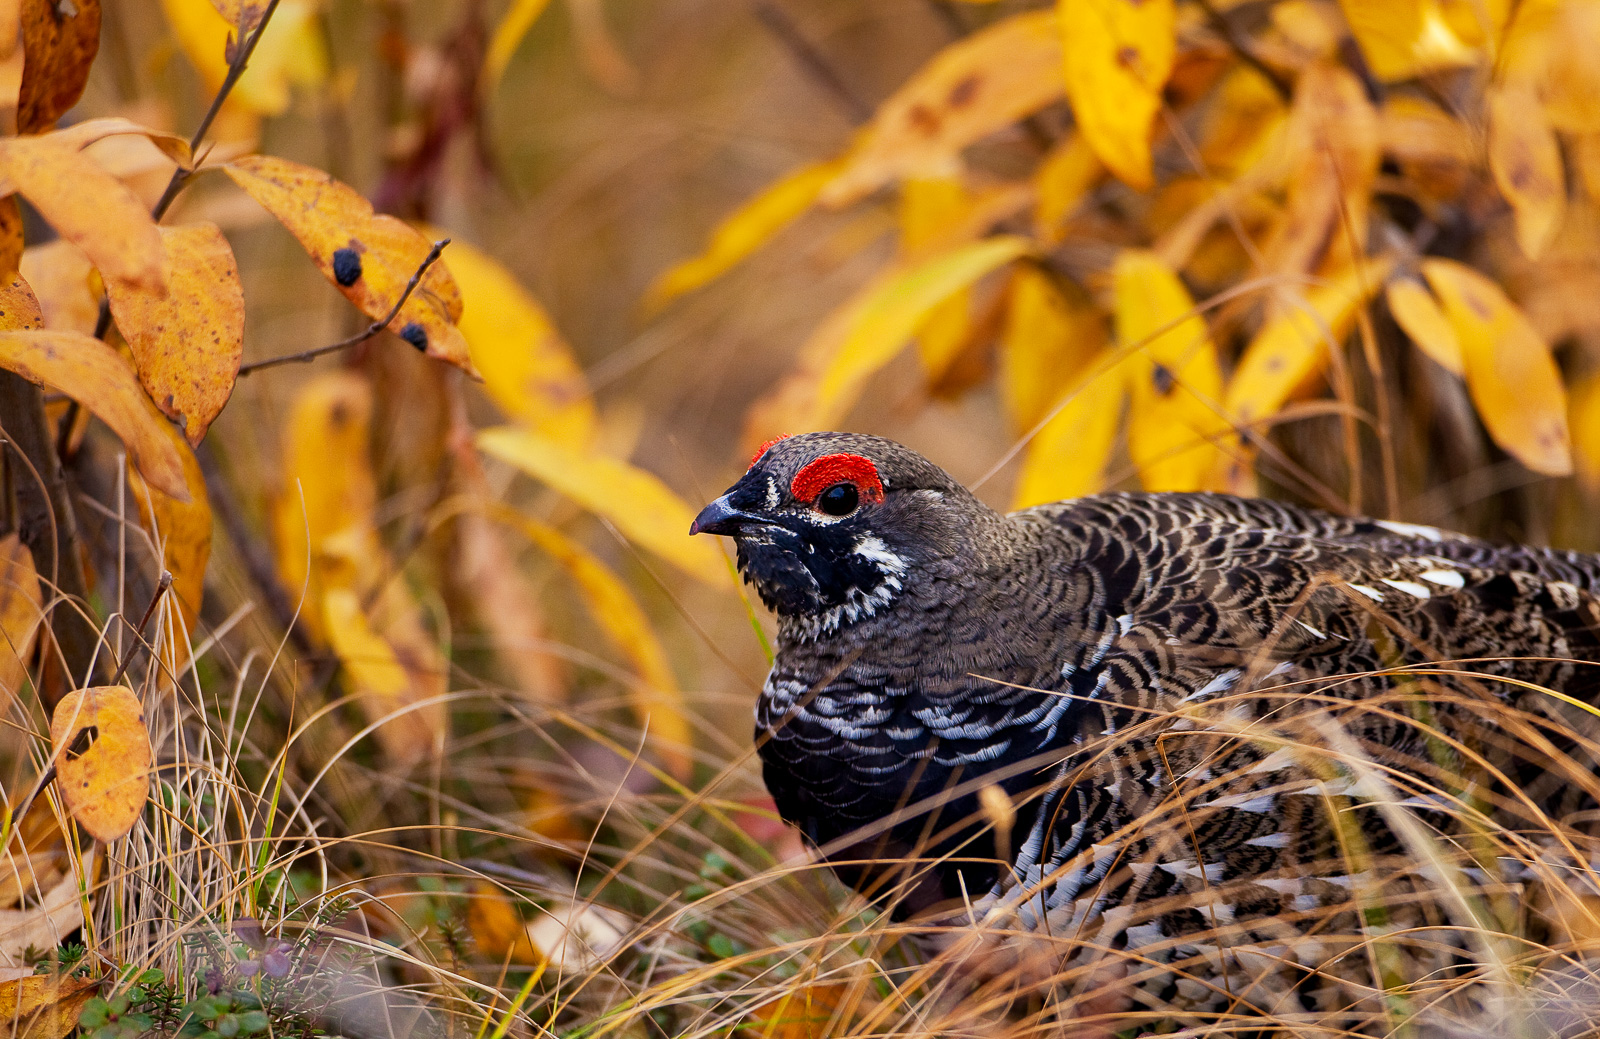 Sprucing it Up,Bird,Fall,Gallery,Spruce Grouse,Wildlife,Denali national Park,Frantic,autumn,yellow, horizontal , photo